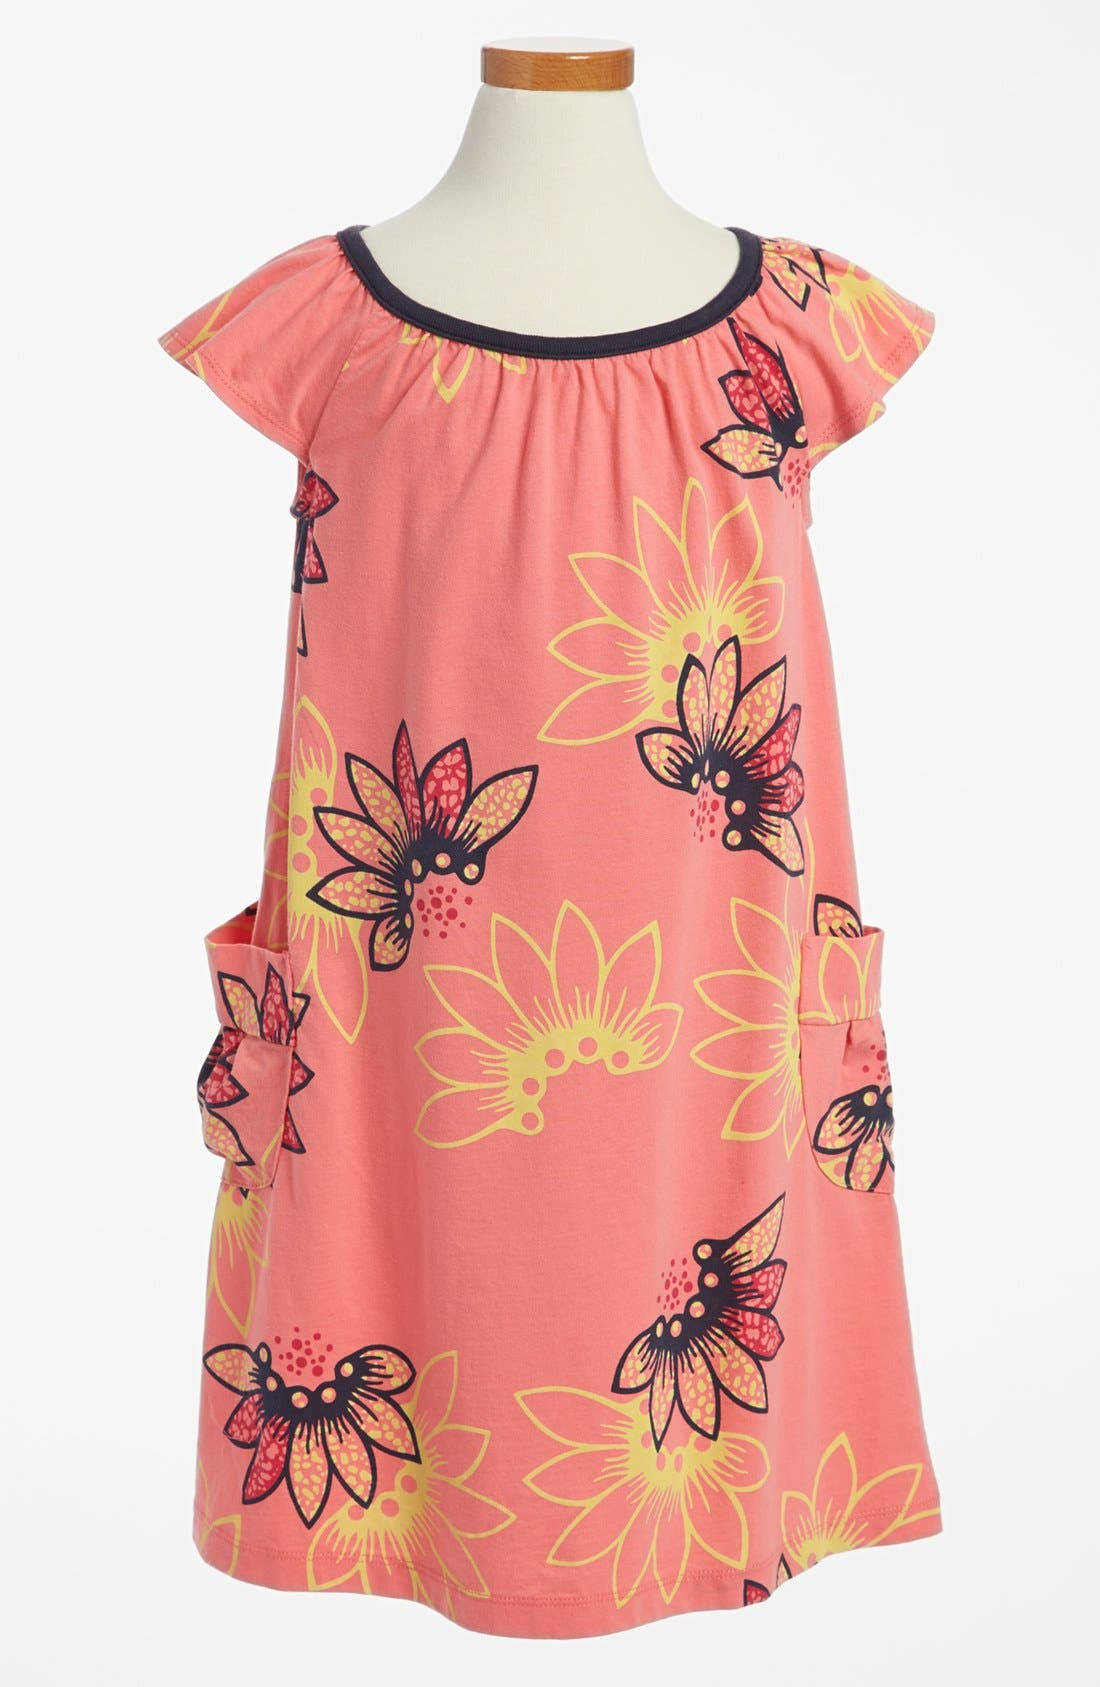 Alternate Image 1 Selected - Tea Collection 'Tidepool Treasure' Dress (Little Girls & Big Girls)